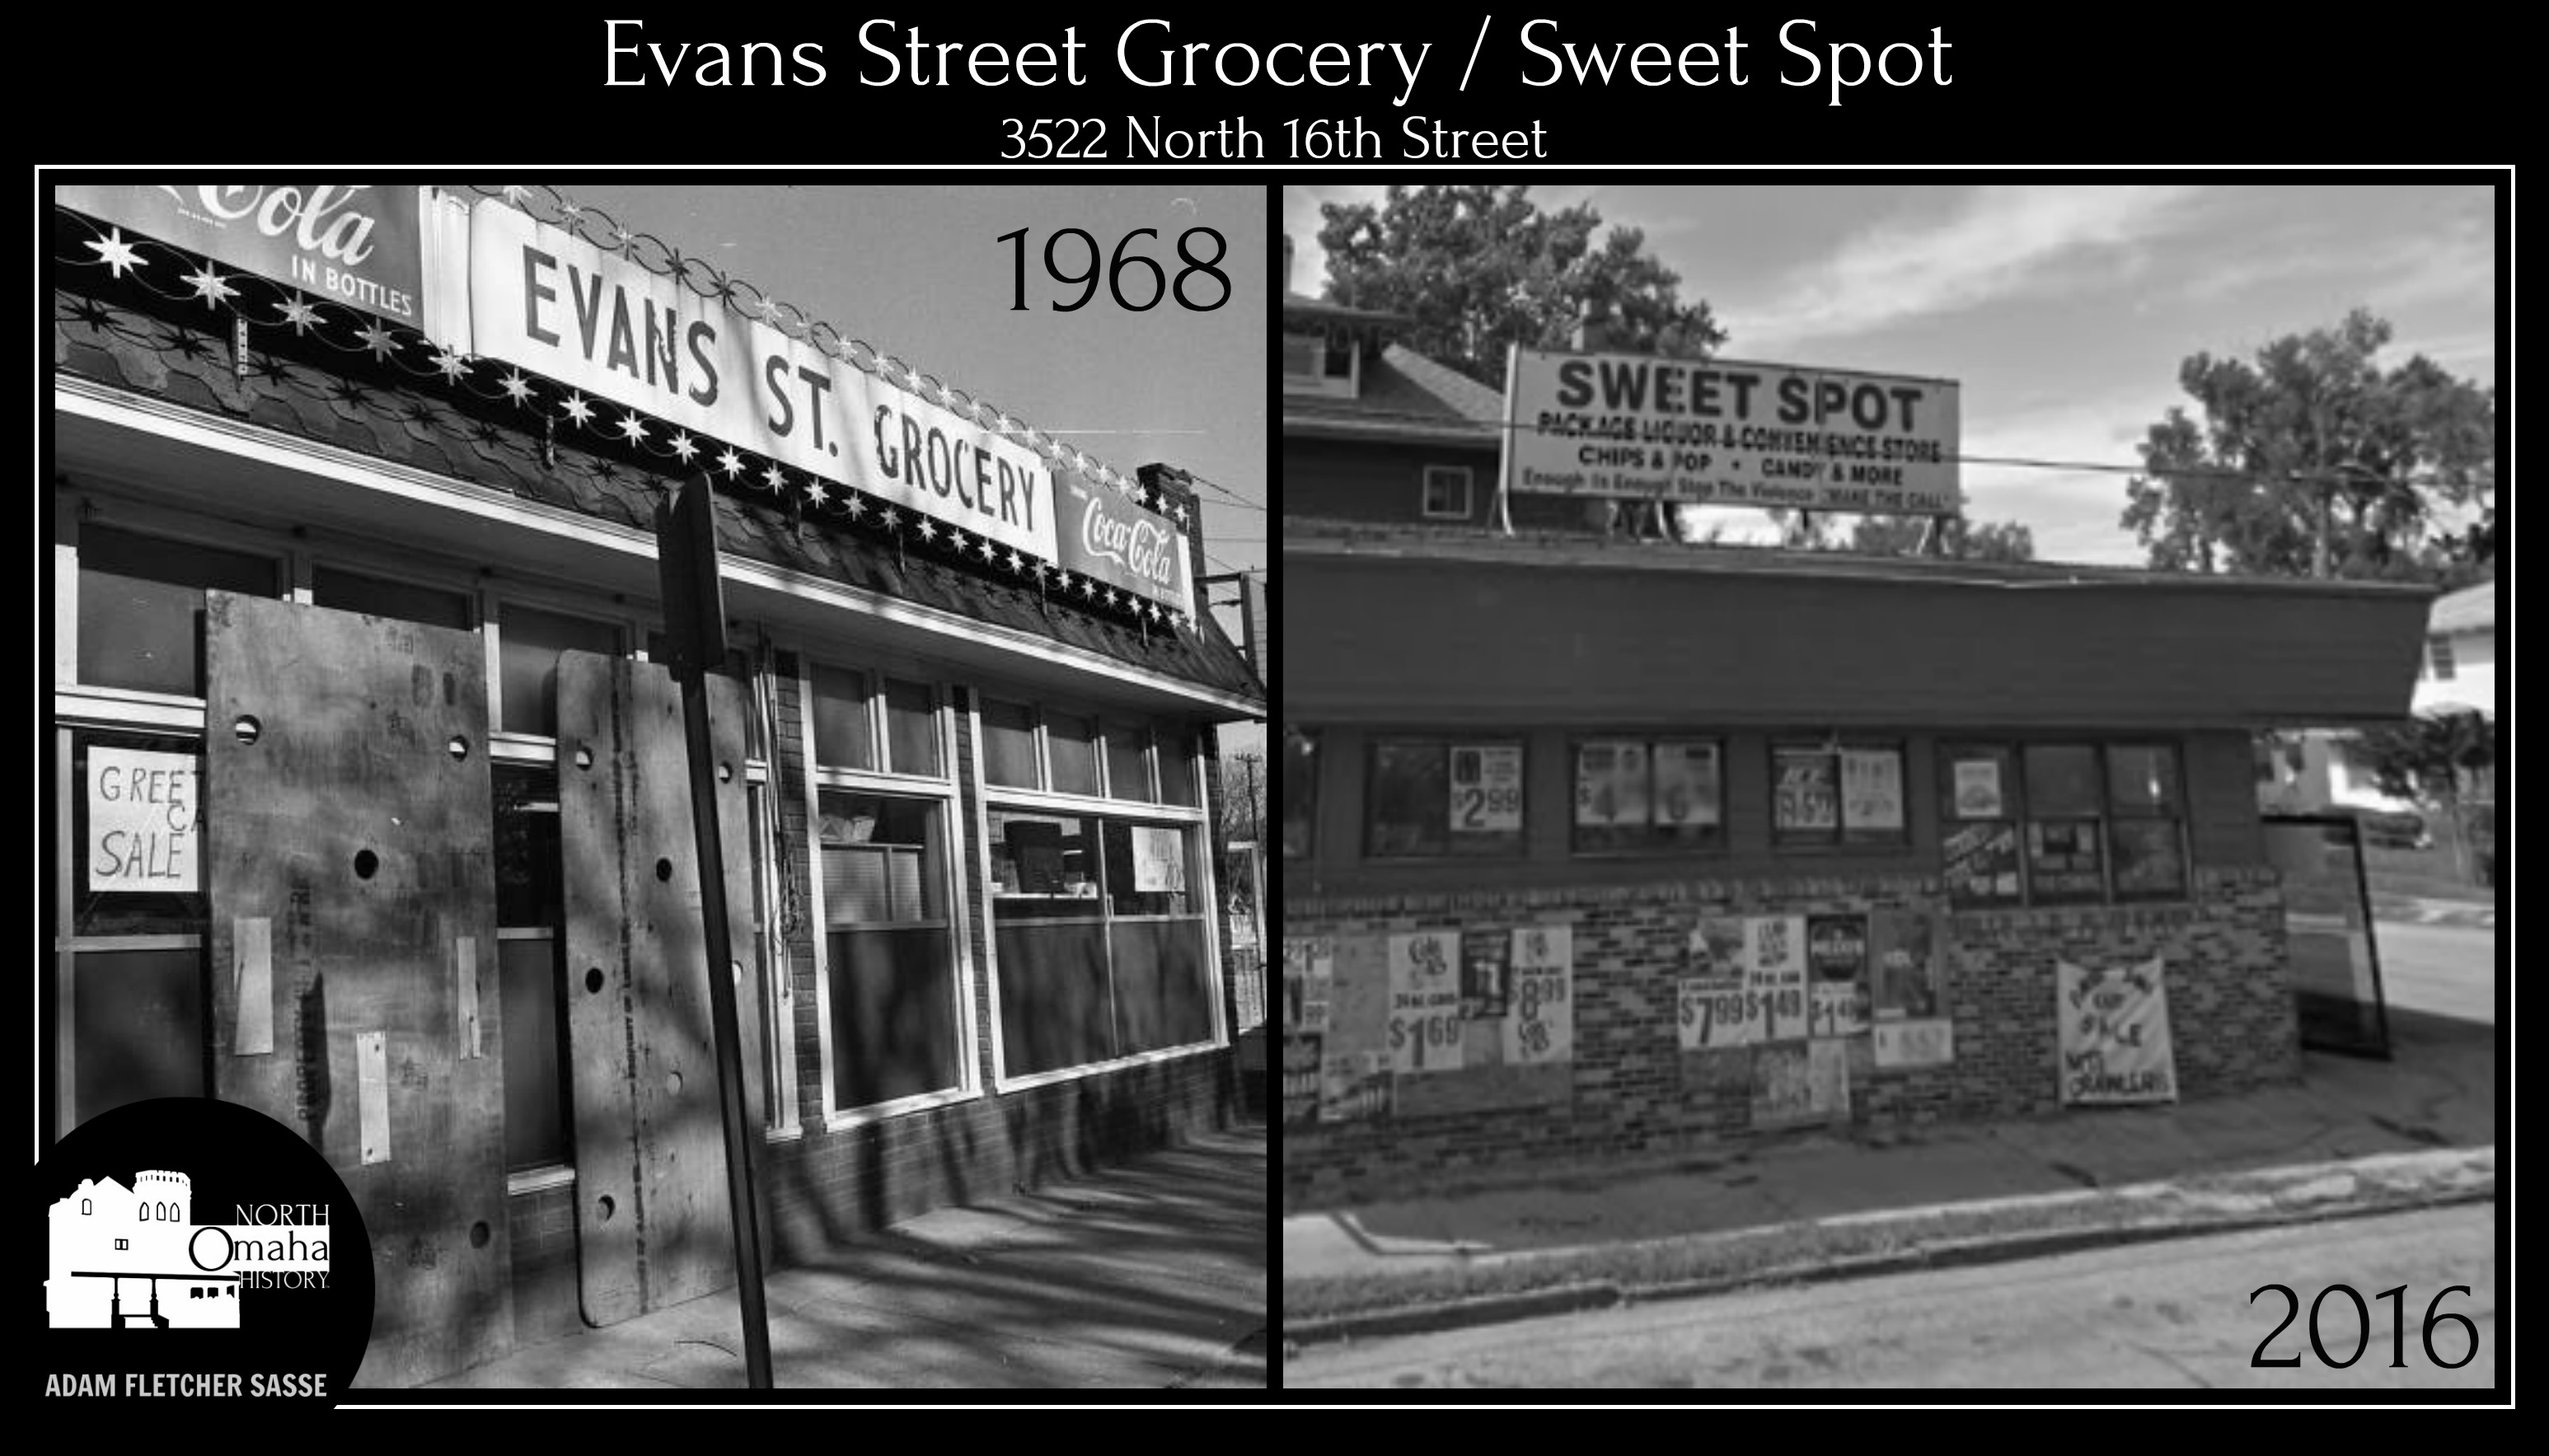 Evans Street Grocery was at 3522 N. 16th Street in North Omaha, Nebraska, until 1968. Today, its the location of the Sweet Spot, a package liquor and convenience store.